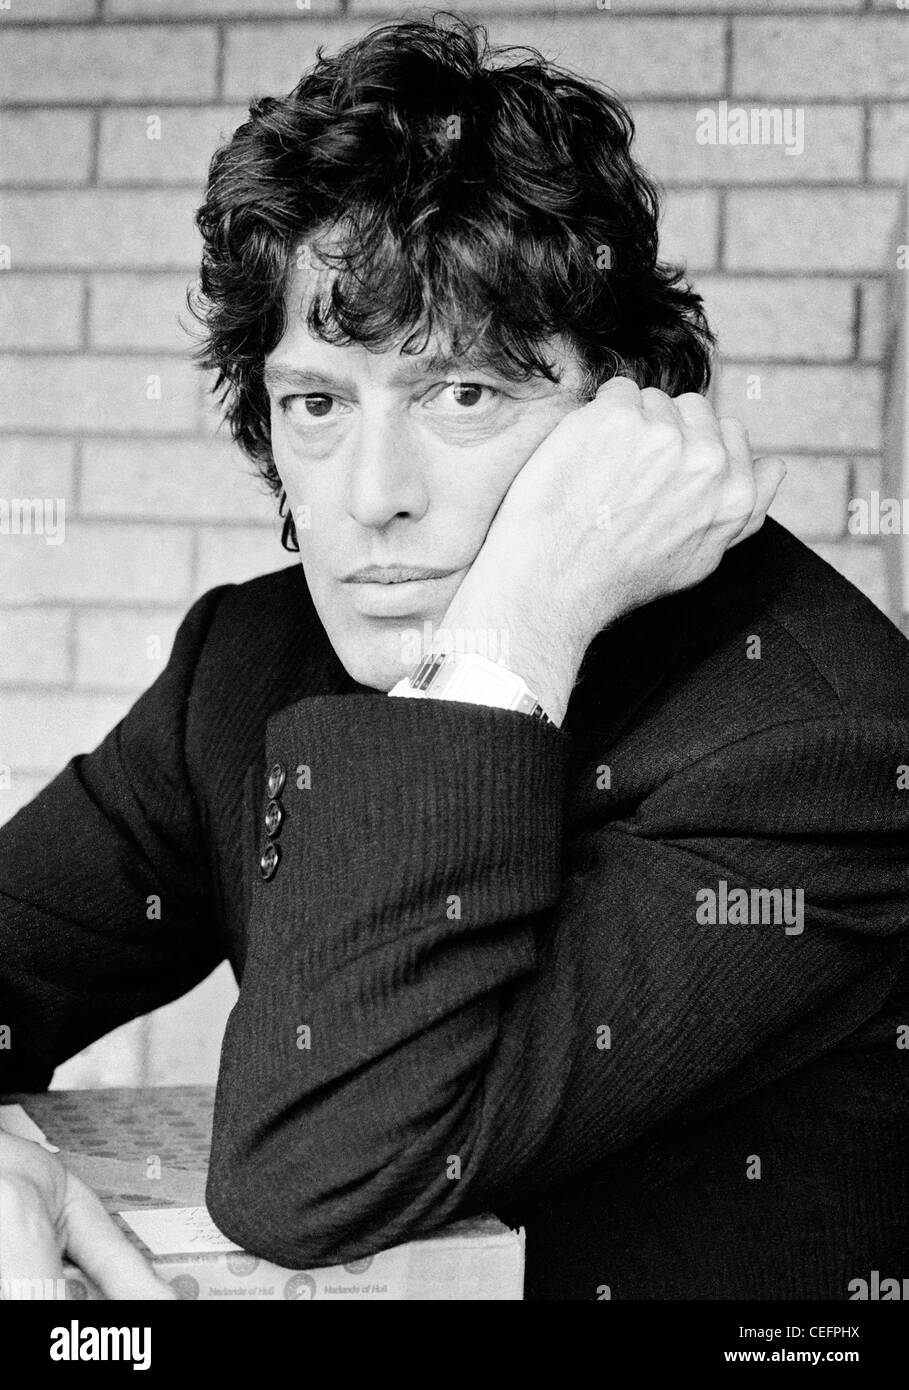 Tom Stoppard playwright, National Theatre, London - Stock Image